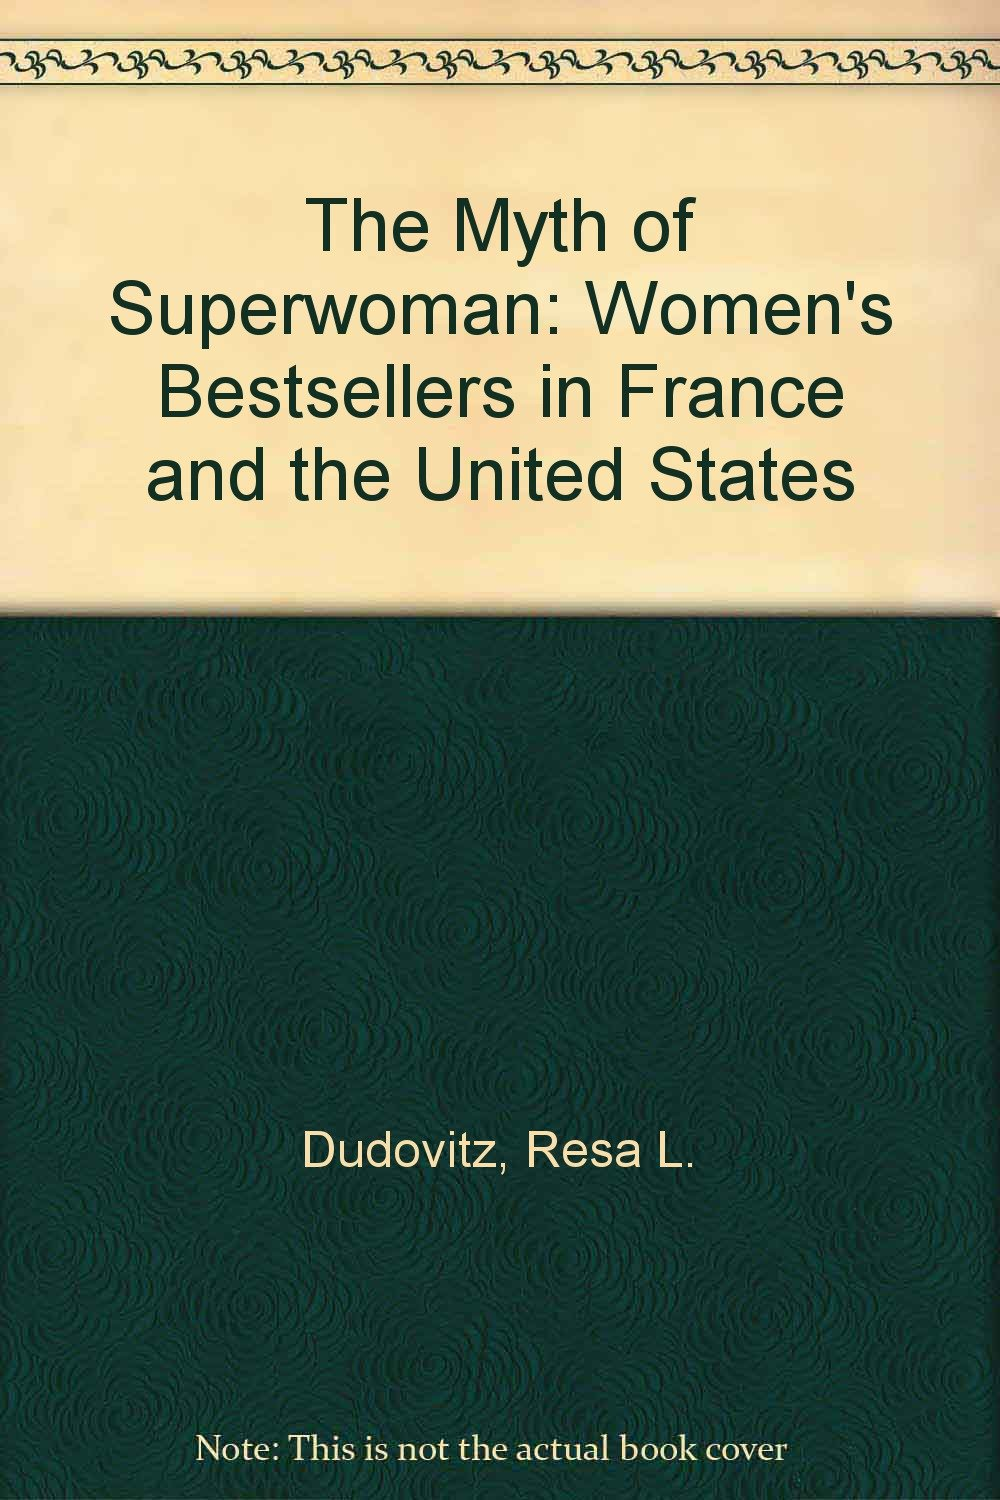 The Myth of Superwoman: Women's Bestsellers in France and the United States